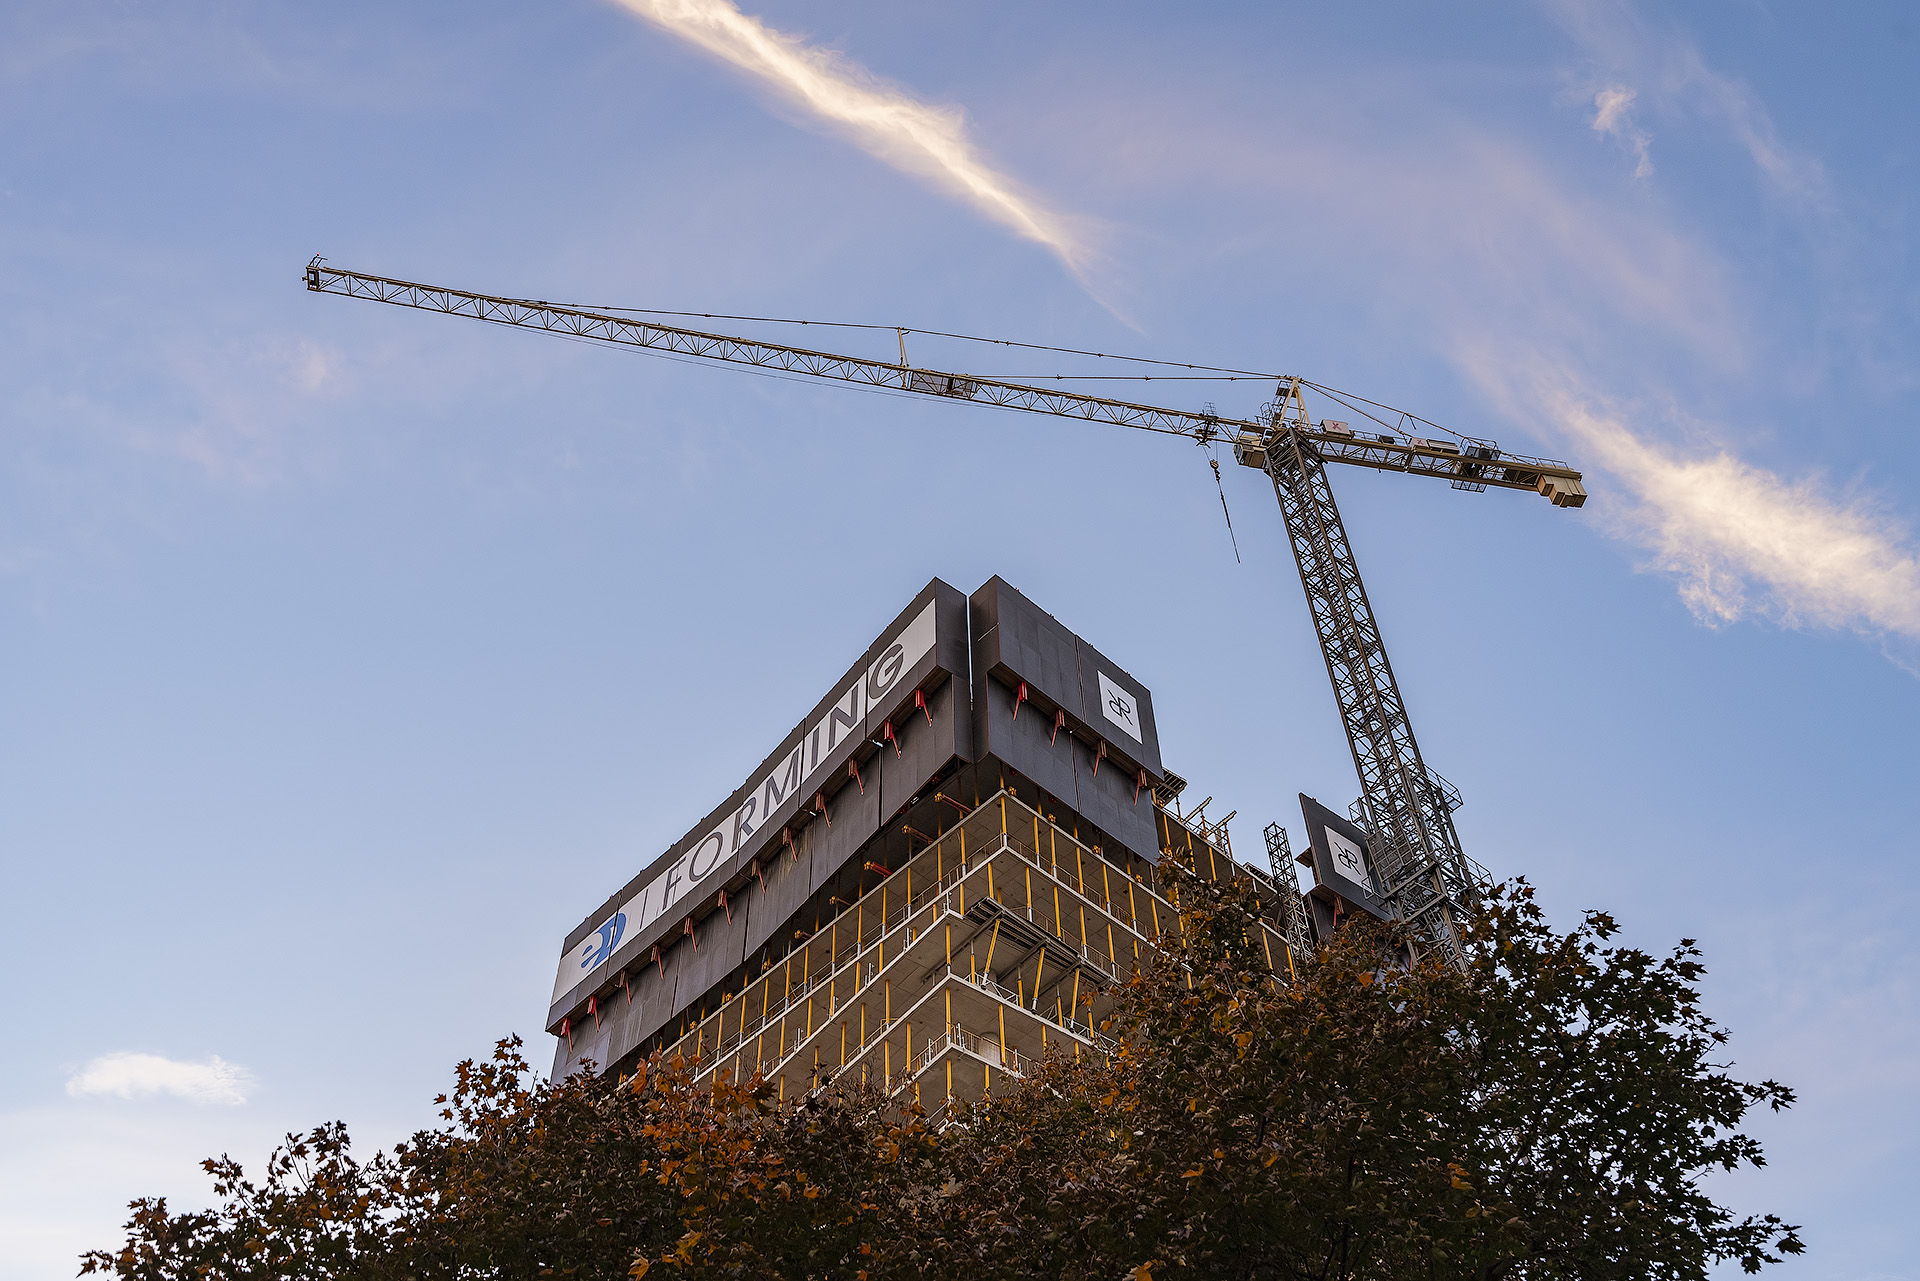 Looking up at the In-progress construction as if emerging from the treetops along with the crane at sunset